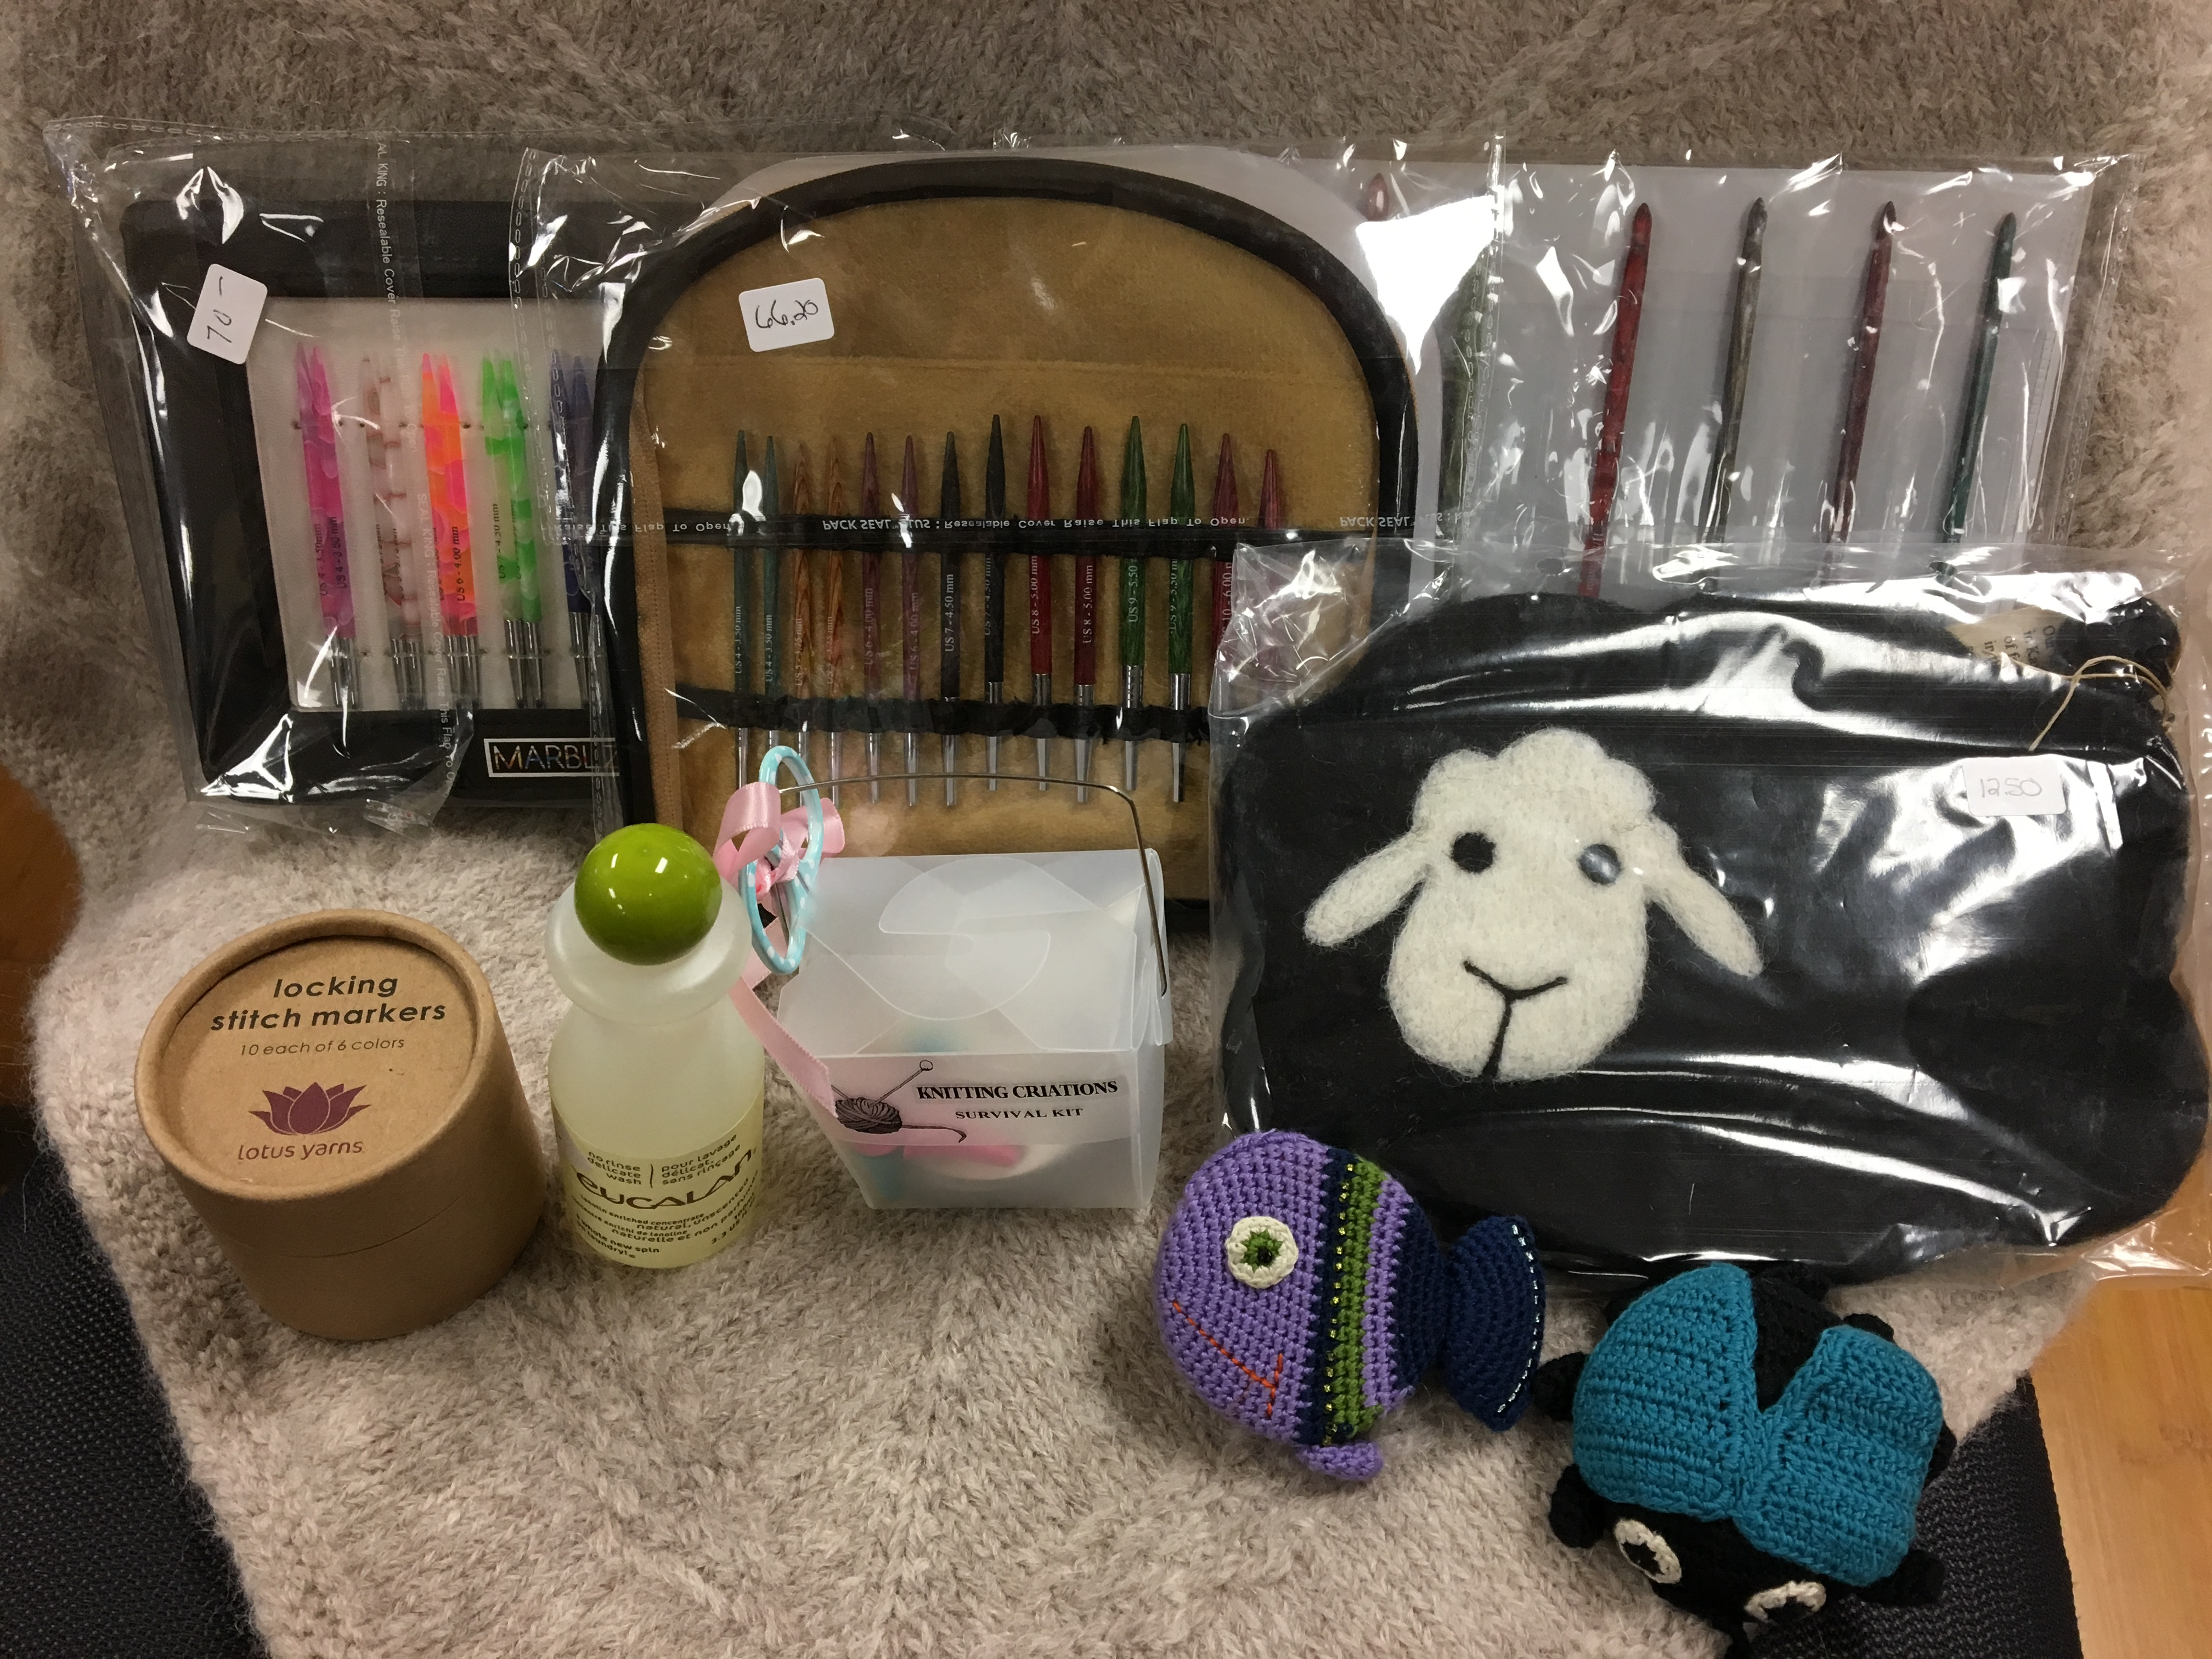 additional products sold, needles and stick markers